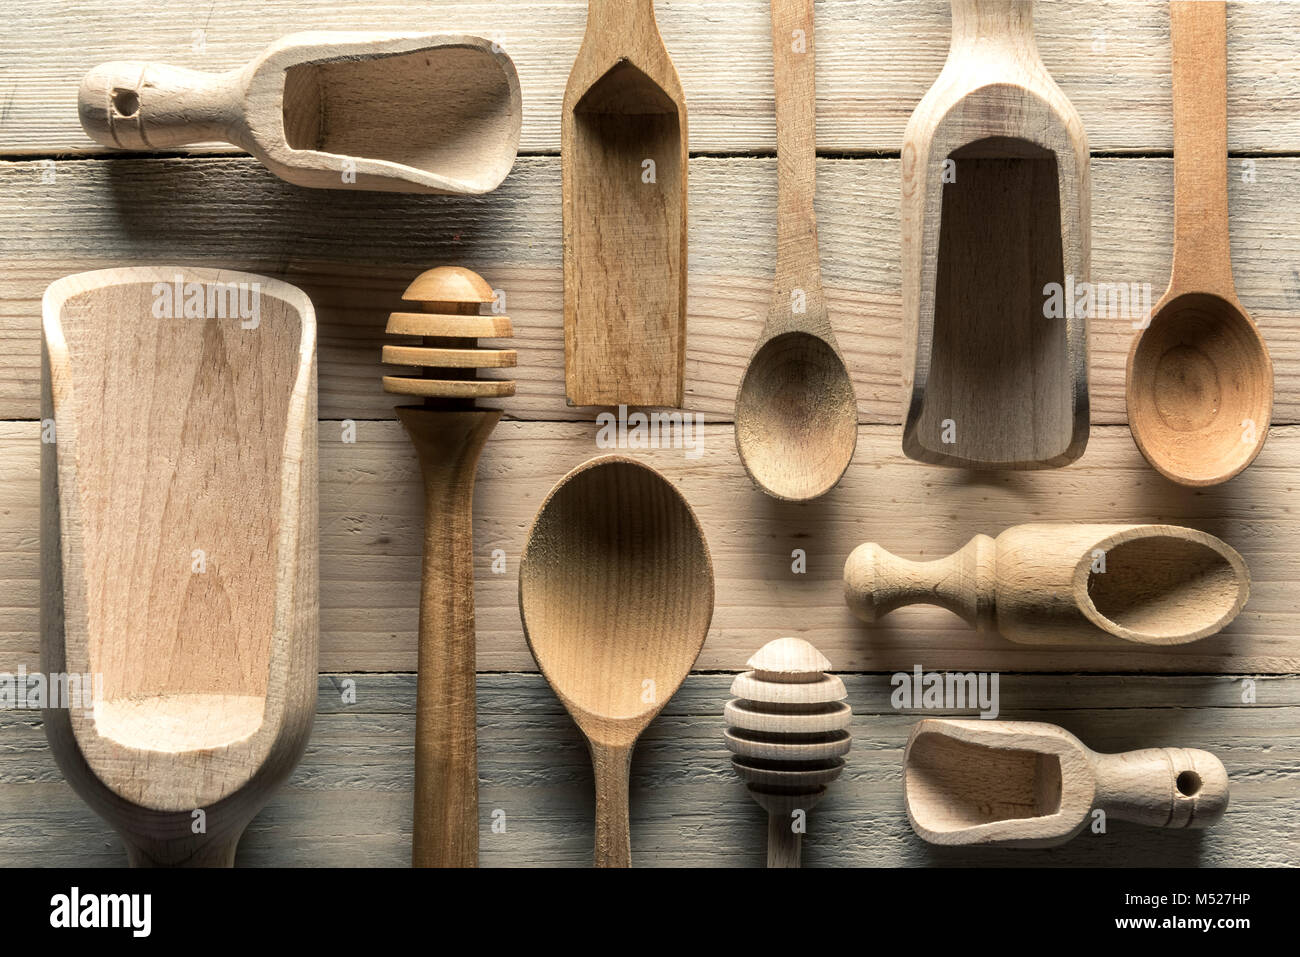 Different wooden utensils on wooden table - Stock Image